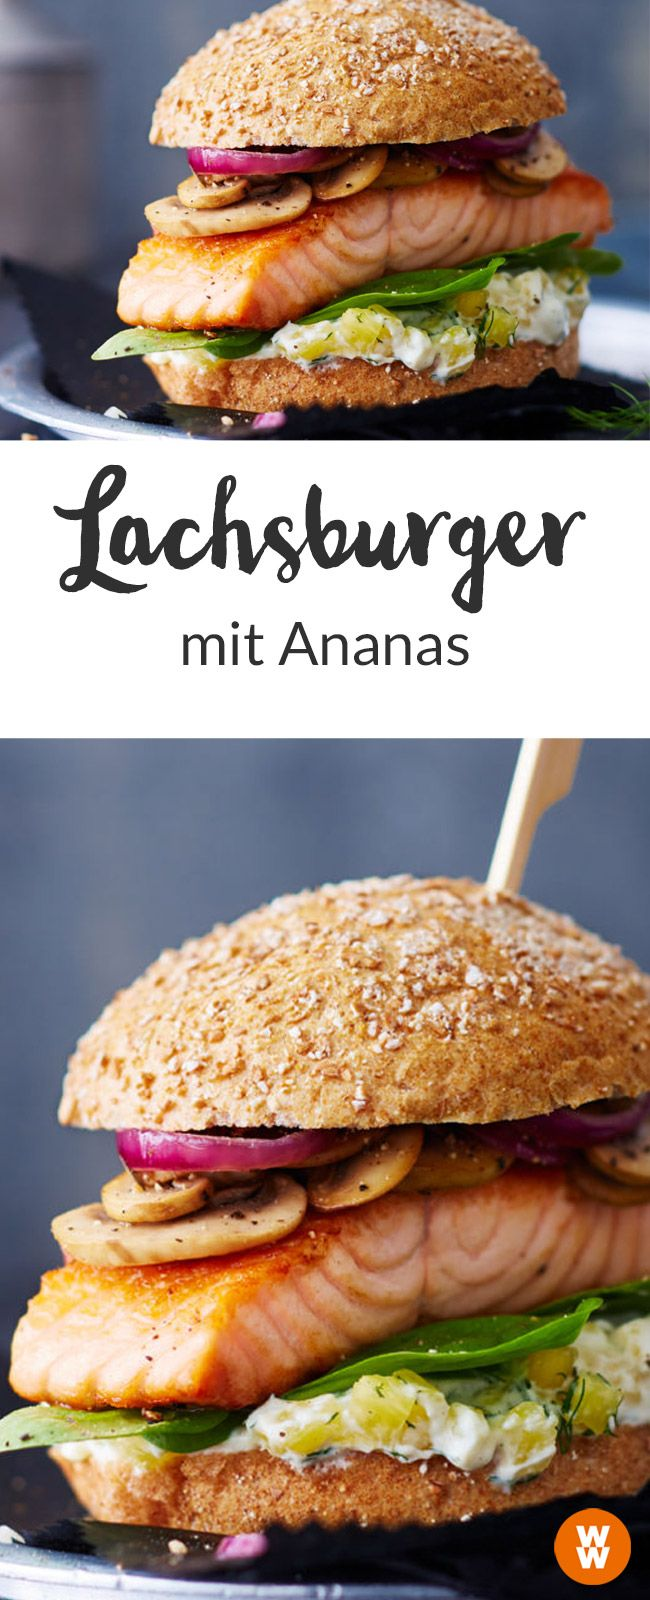 Your Way I Burger I Burgerrezept I Lachsburger I WW Burger I WW Your Way I Weight Watchers